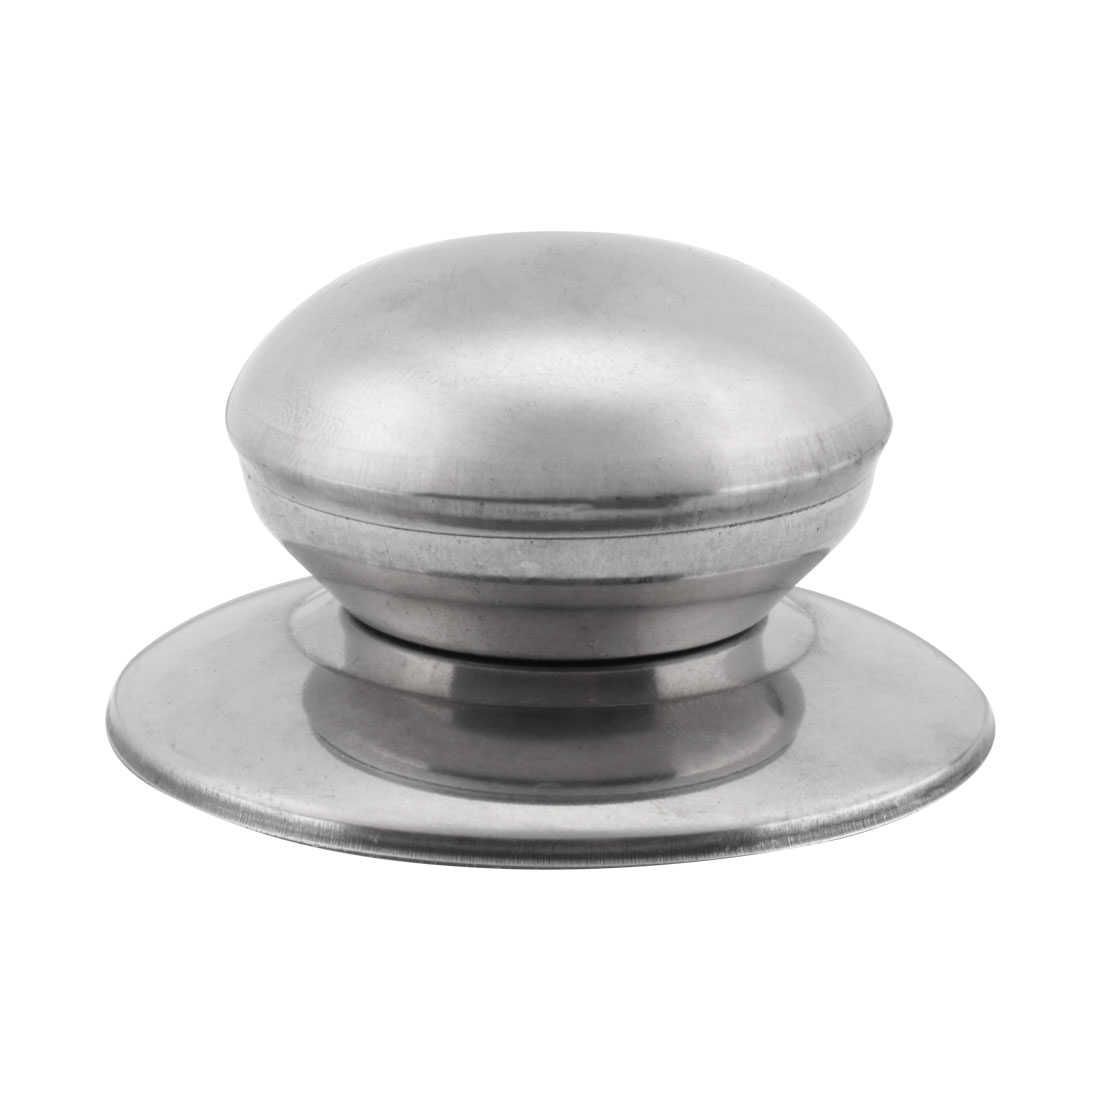 "Silver Tone Stainless Steel Tempered Glass Pot Pan Cover Lid Knob 2.8"" Dia"